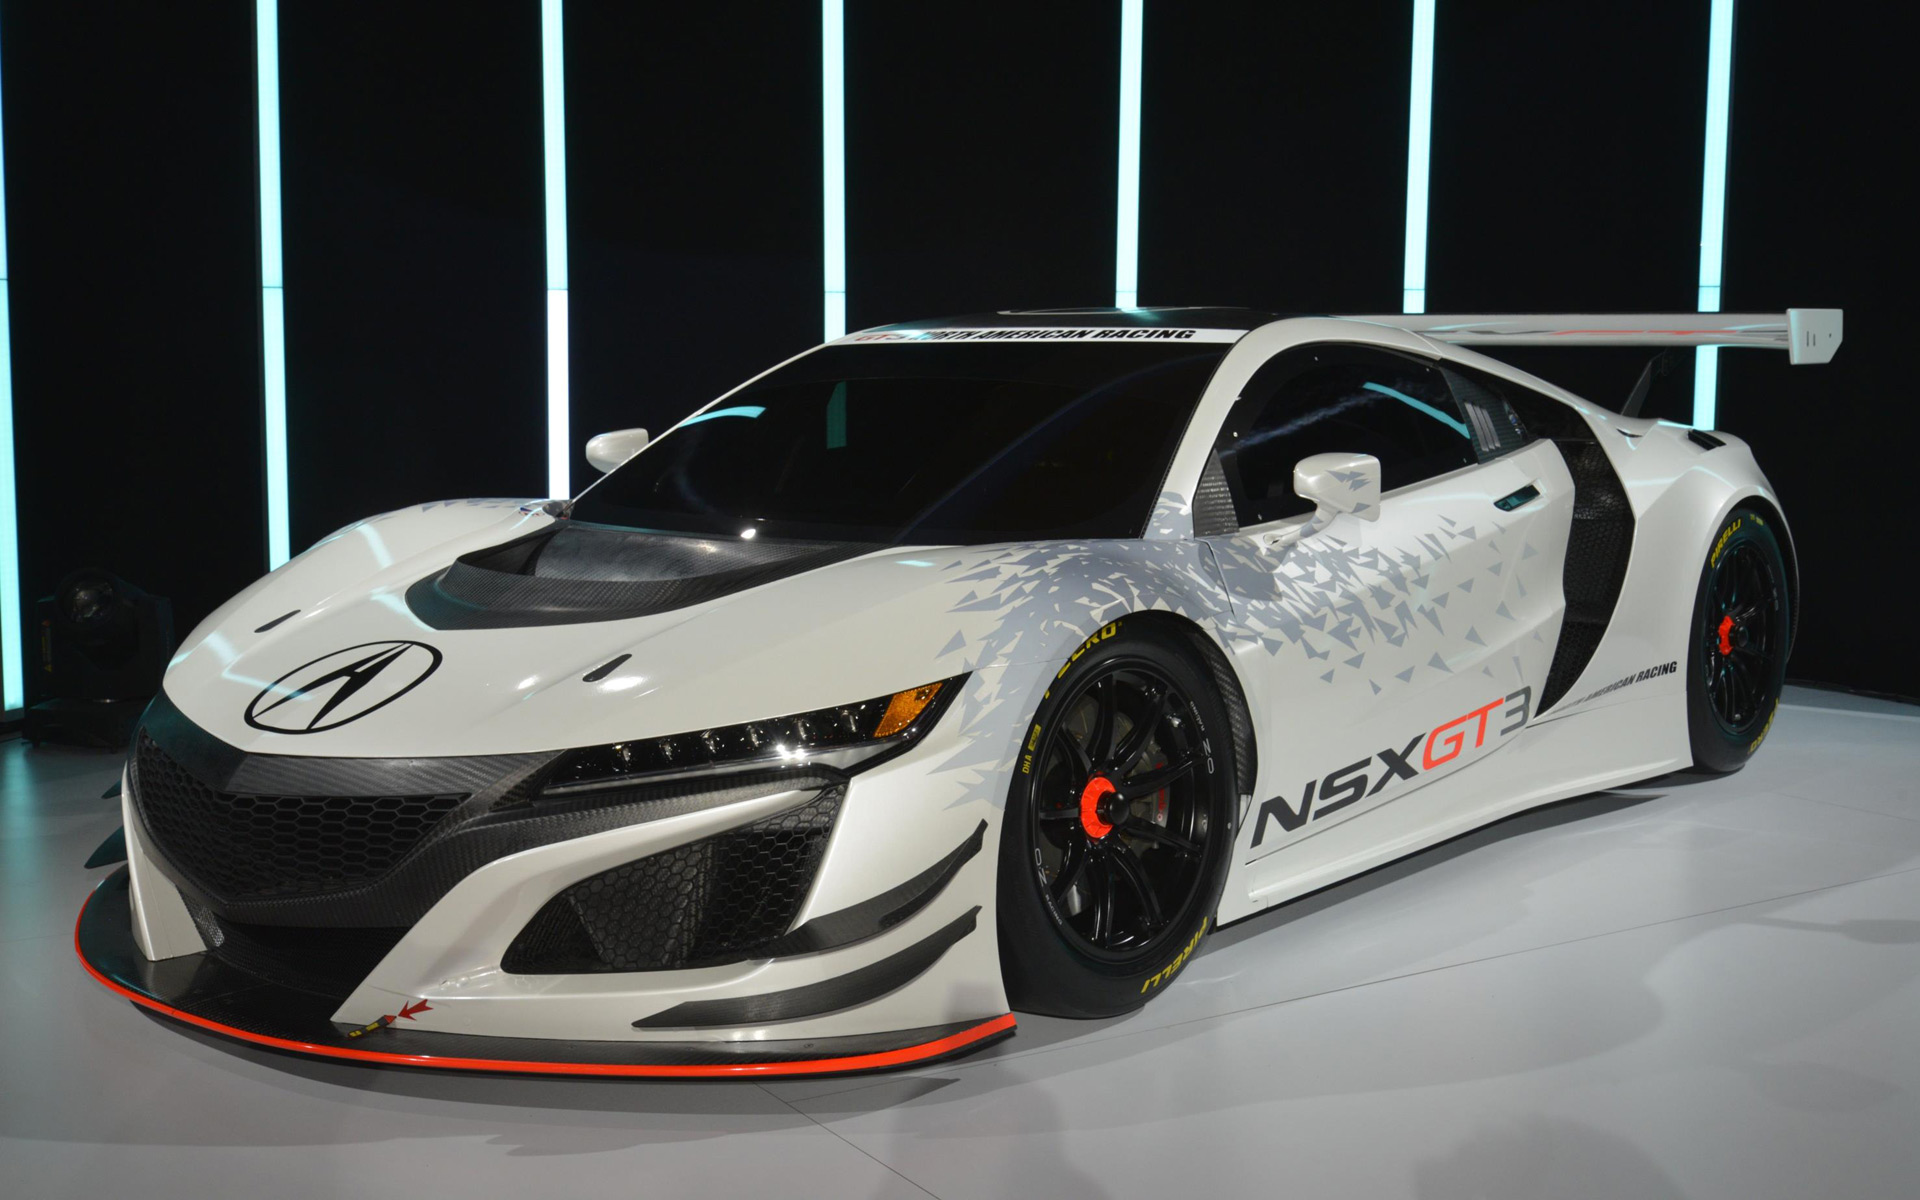 All new race-spec version of the Acura NSX GT3